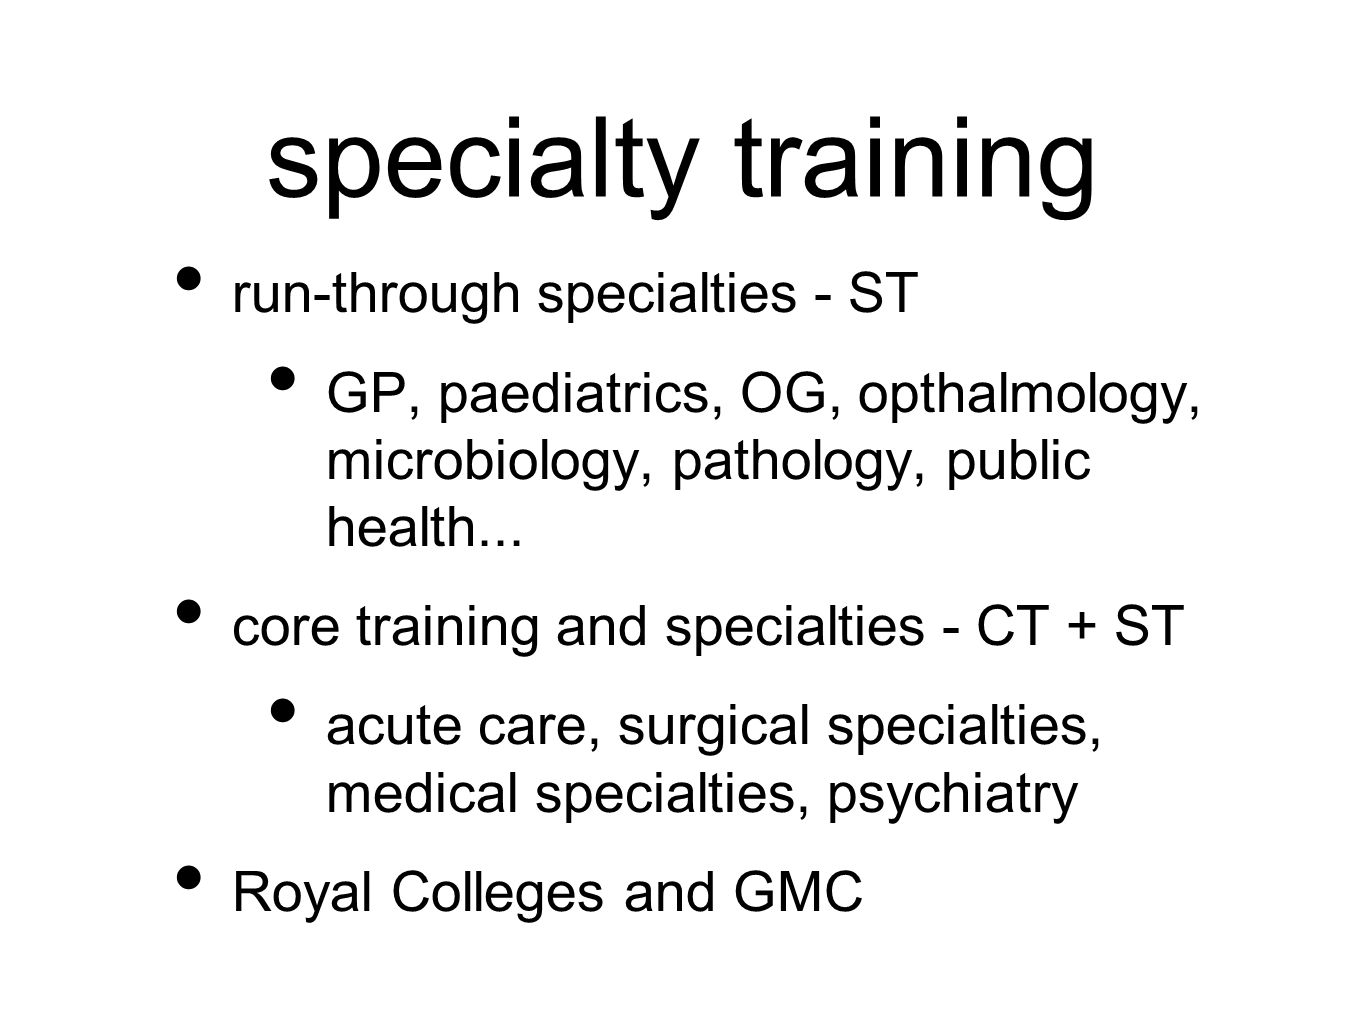 specialty training run-through specialties - ST GP, paediatrics, OG, opthalmology, microbiology, pathology, public health...